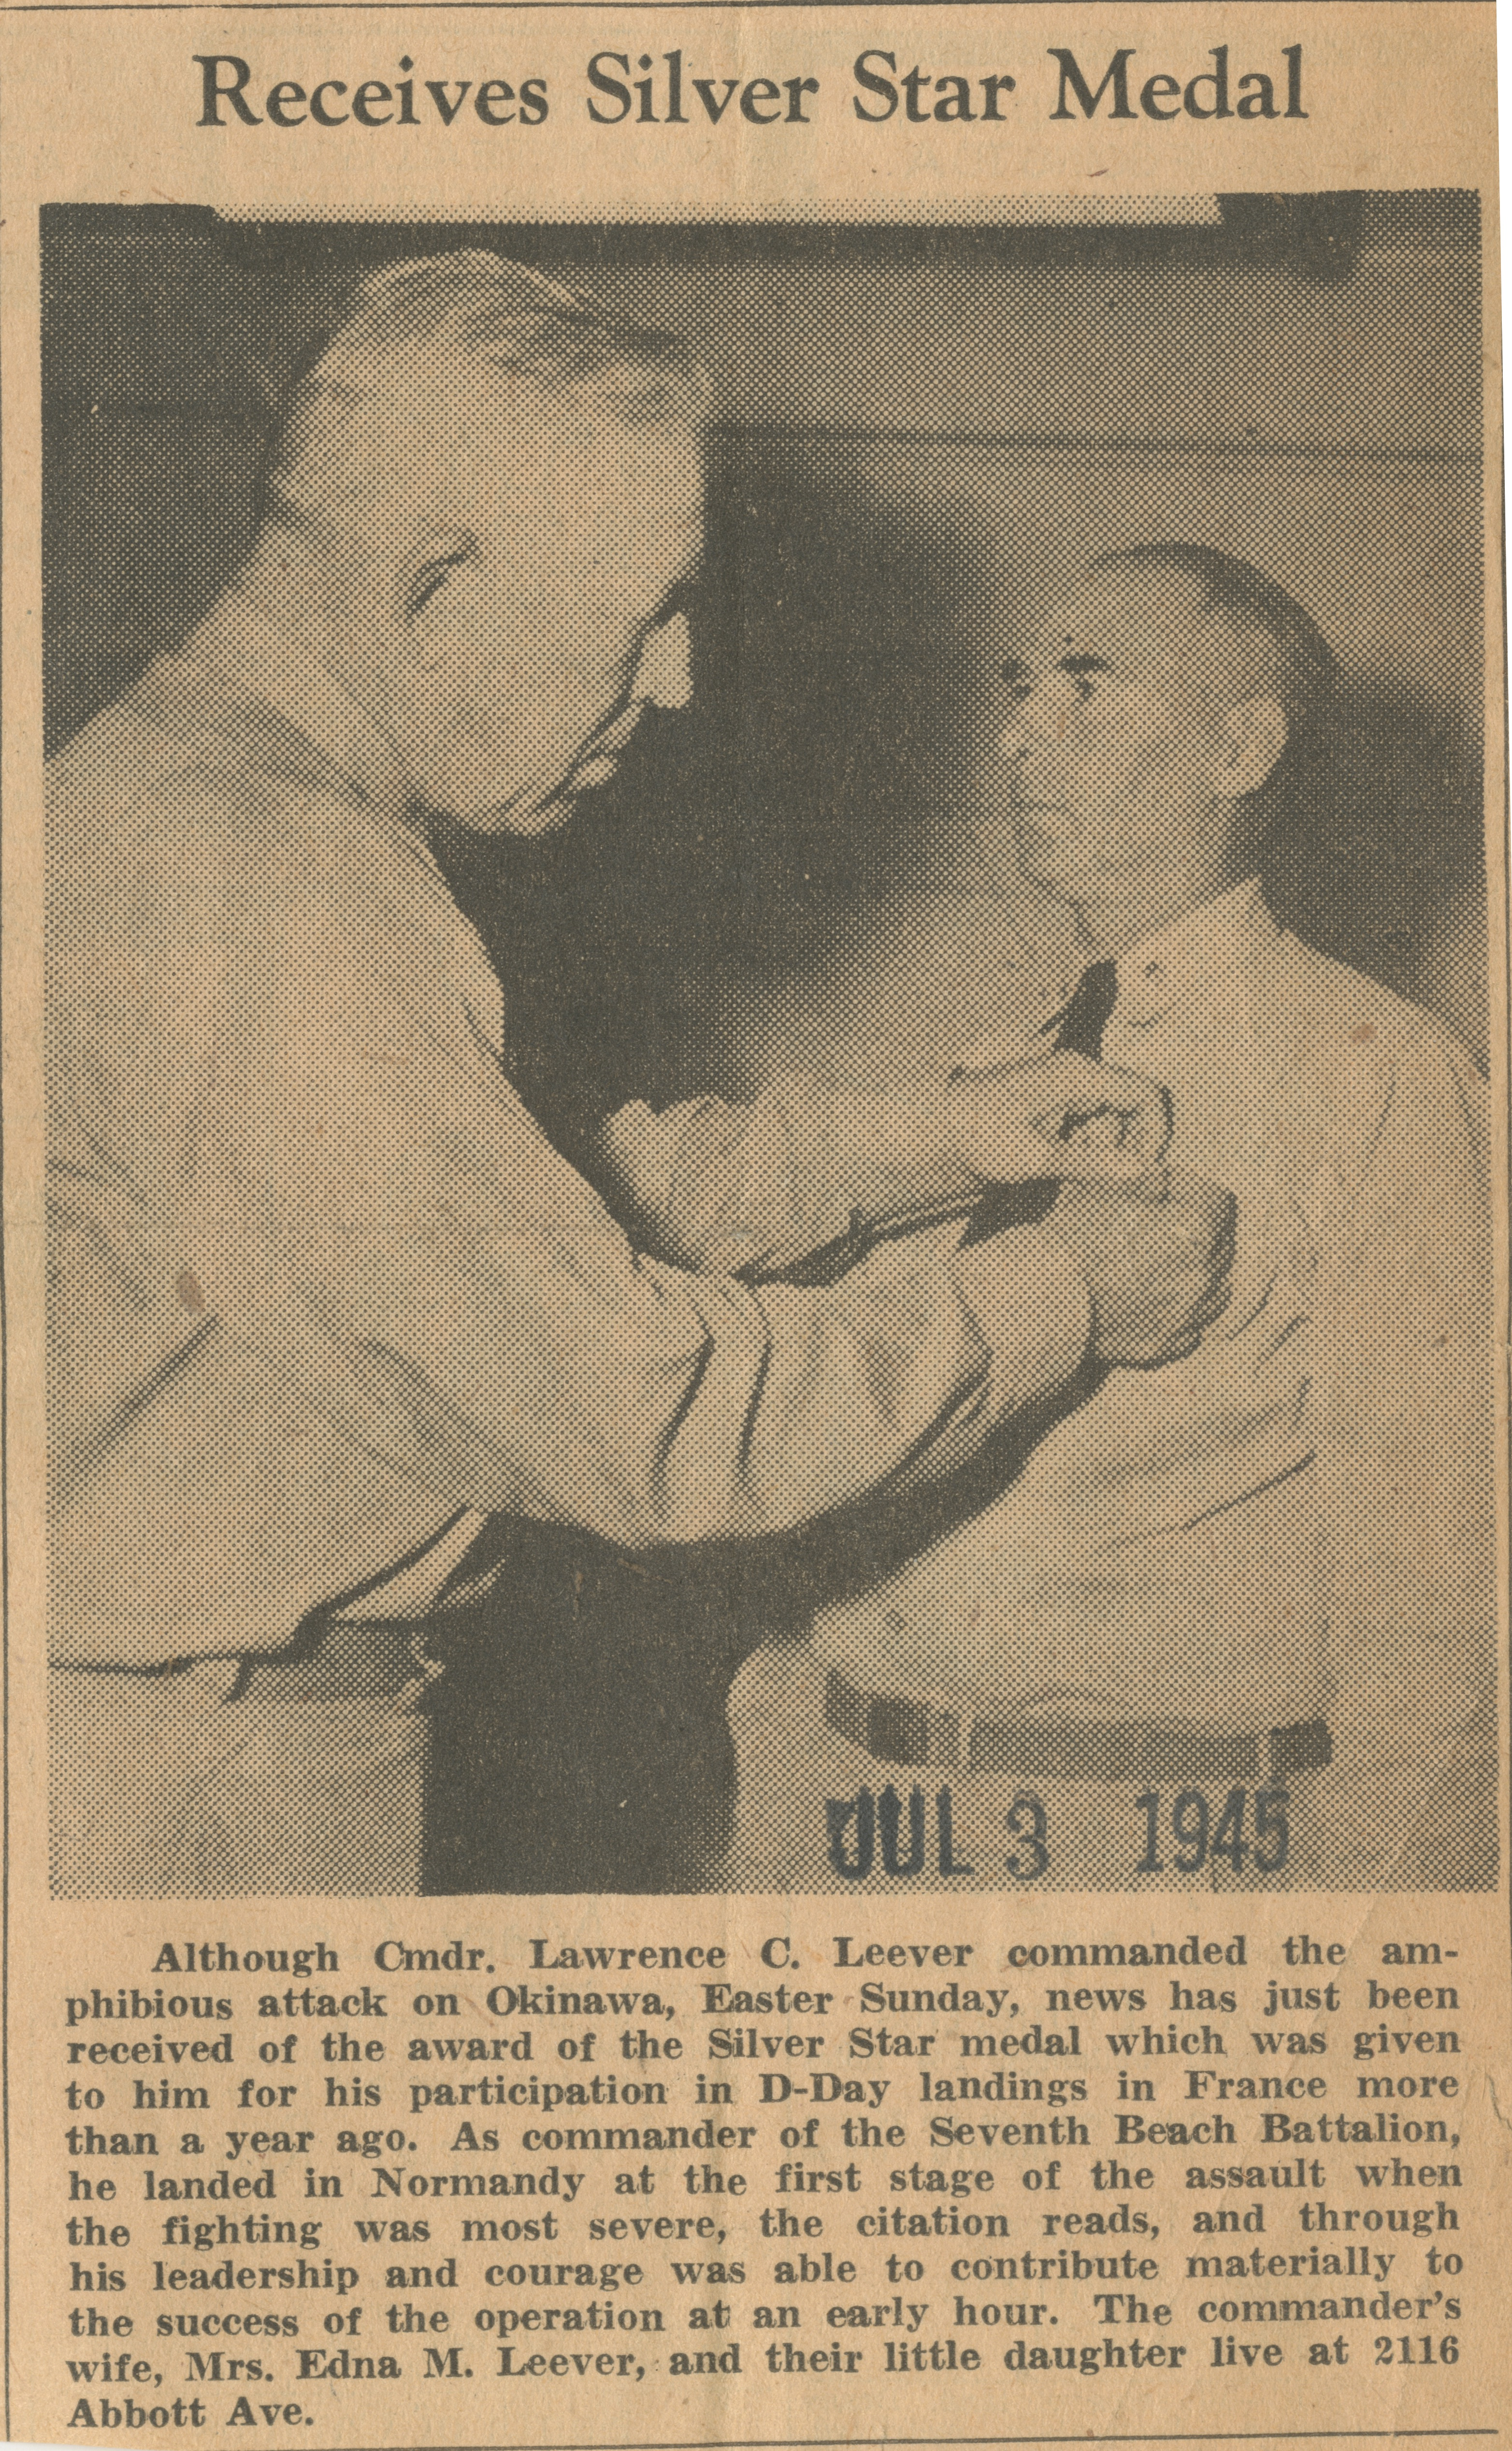 Receives Silver Star Medal image